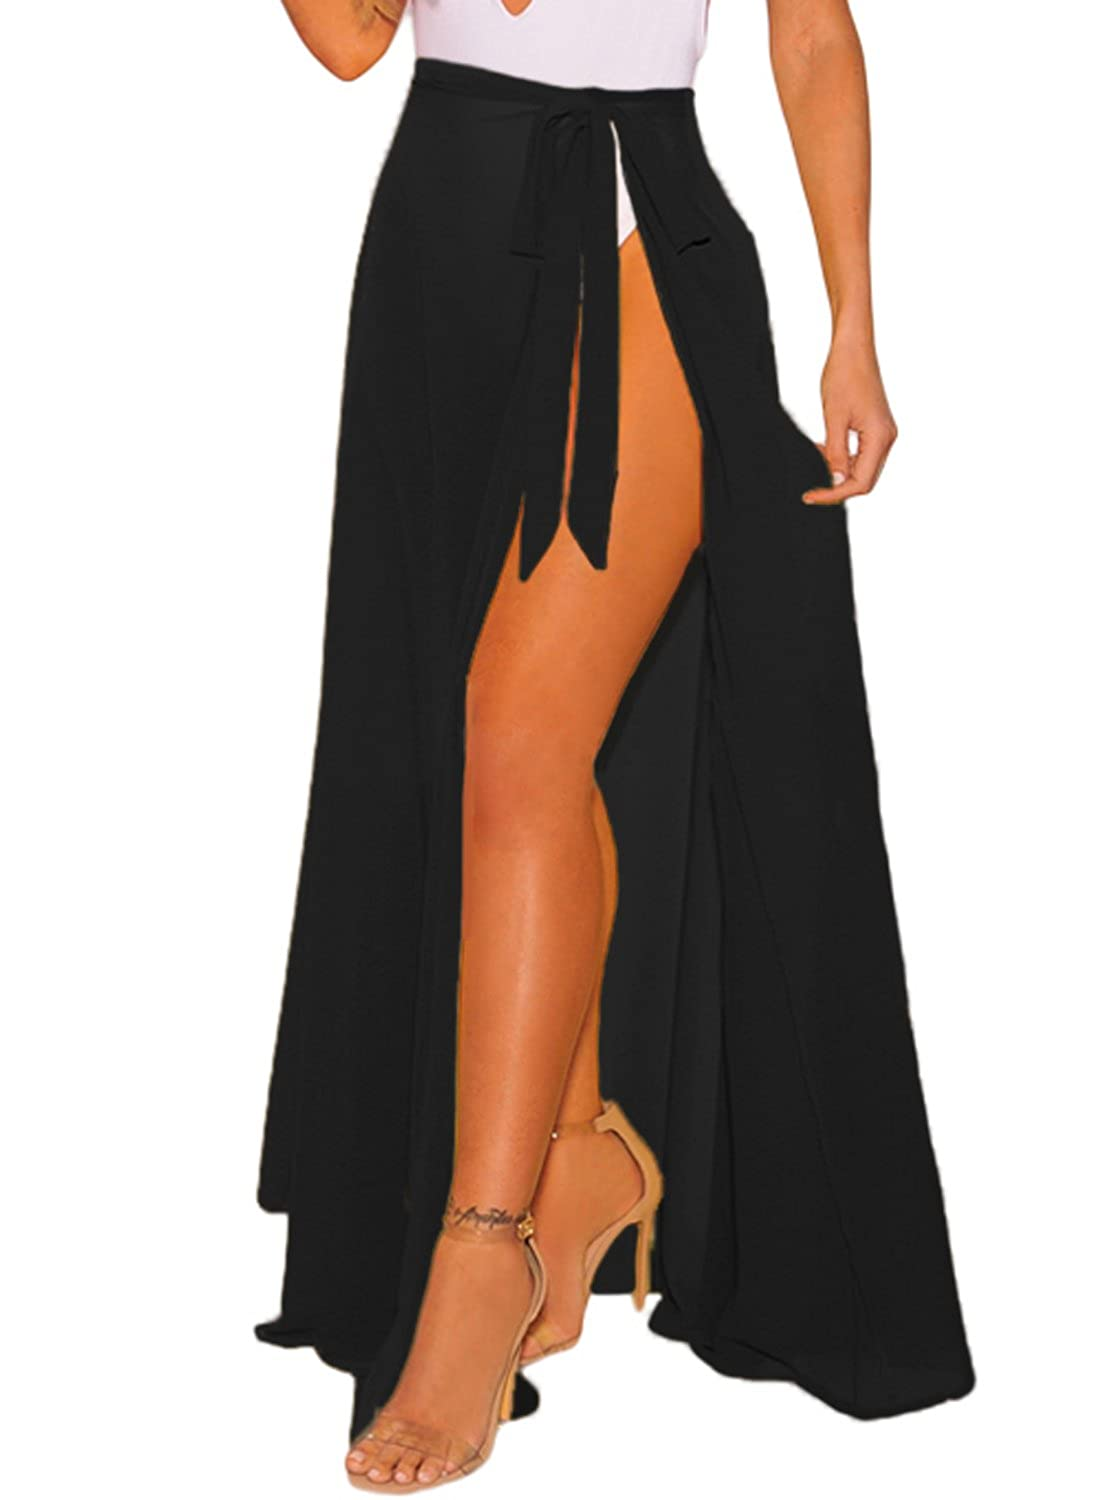 96e403abf9bfa Wrap around is chic flattering while the side slit is sassy flirty.  Adjustable strap